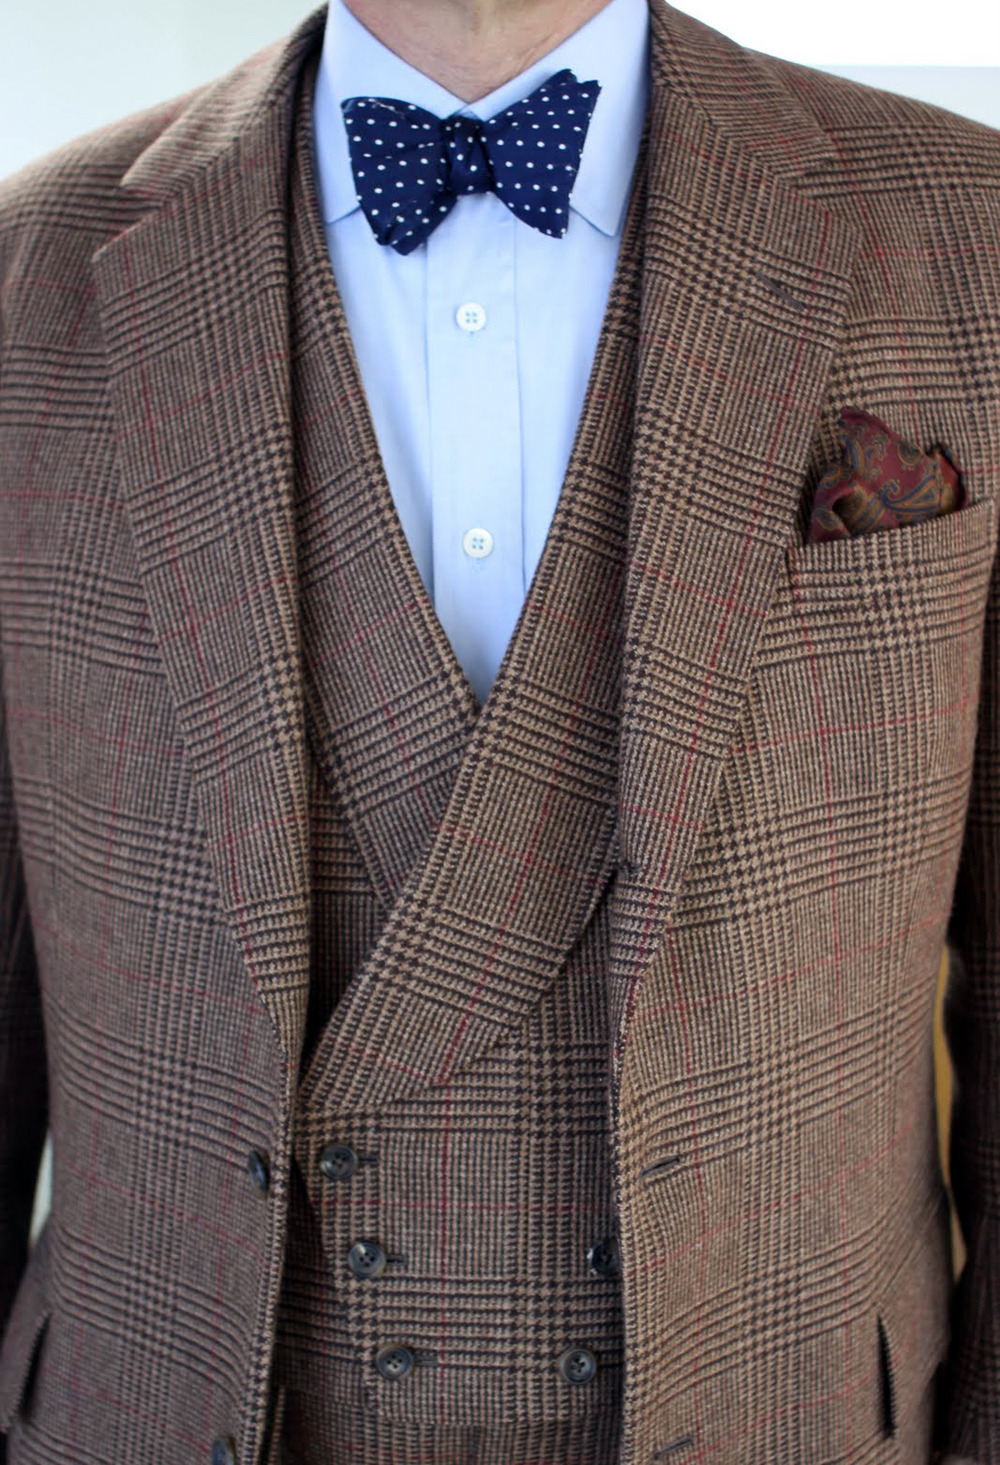 voxsart:  Tweed Time. Will Boehlke in Lovat tweed.  I wish I could make a bowtie work